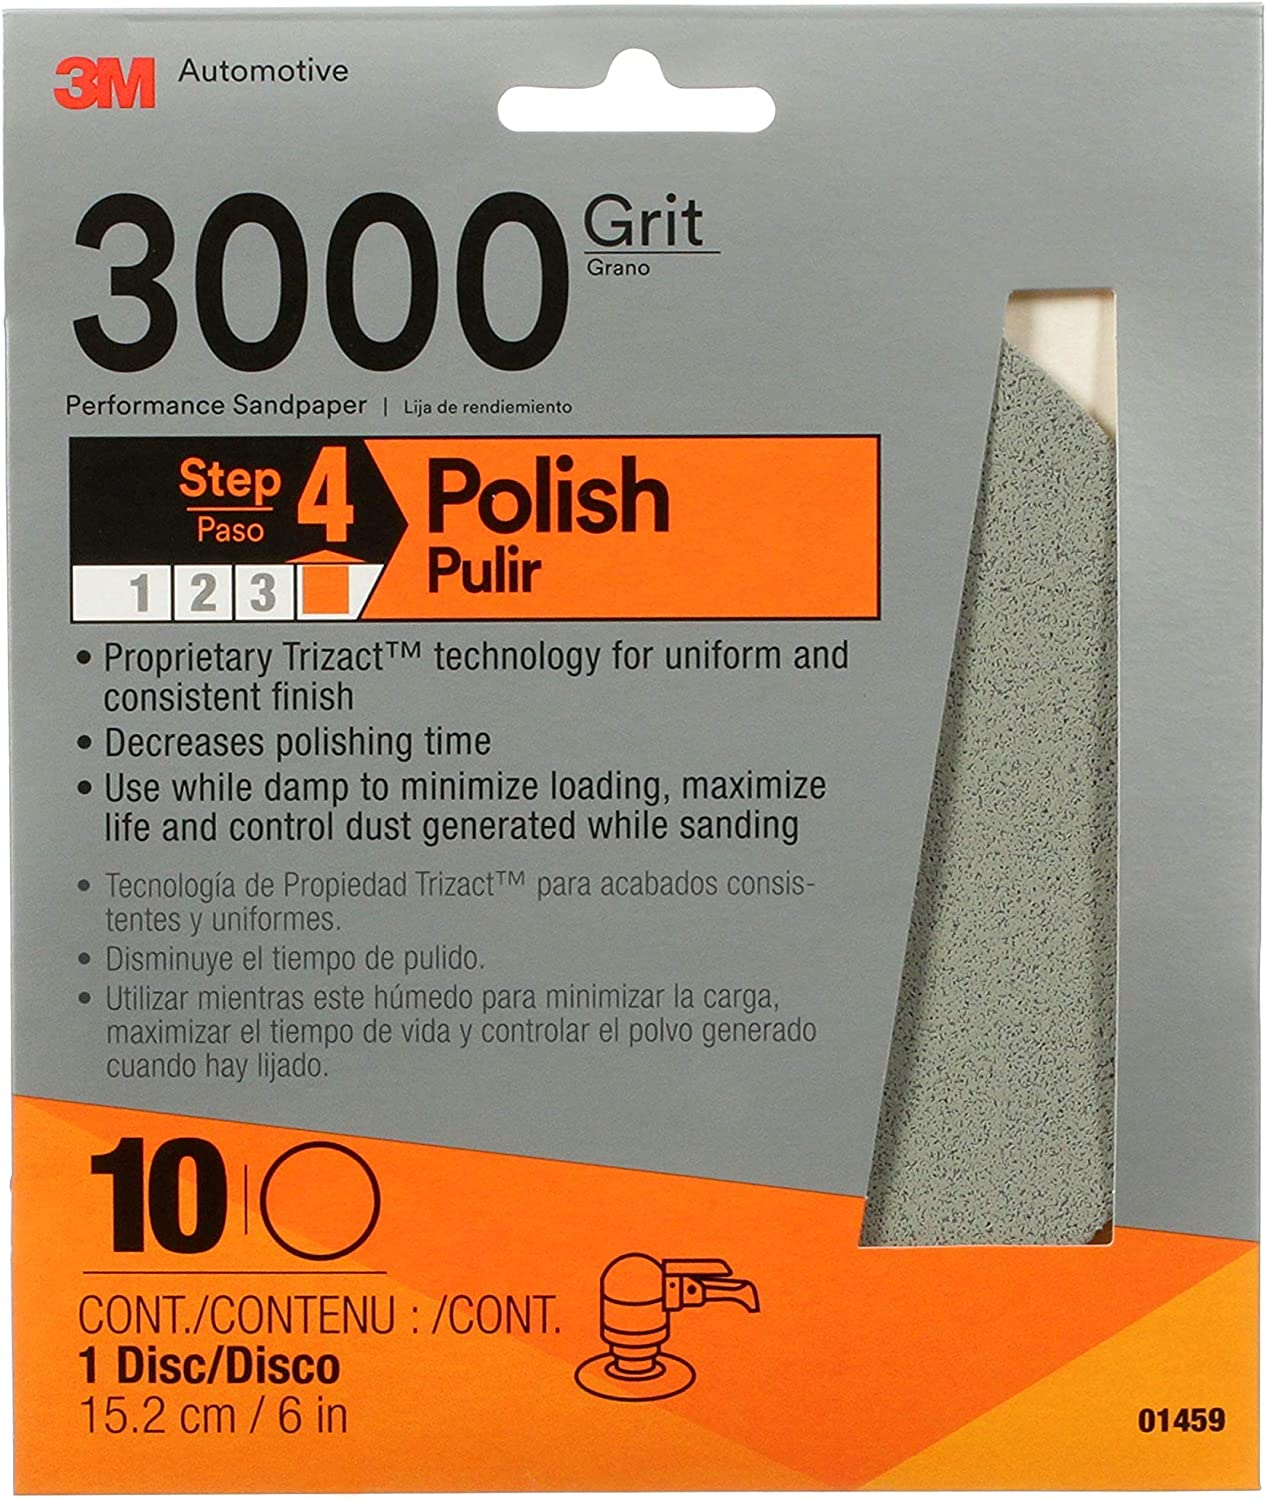 3M Trizact Performance Sanding Abrasive Disc, 01459, 6 in, 3000 grit